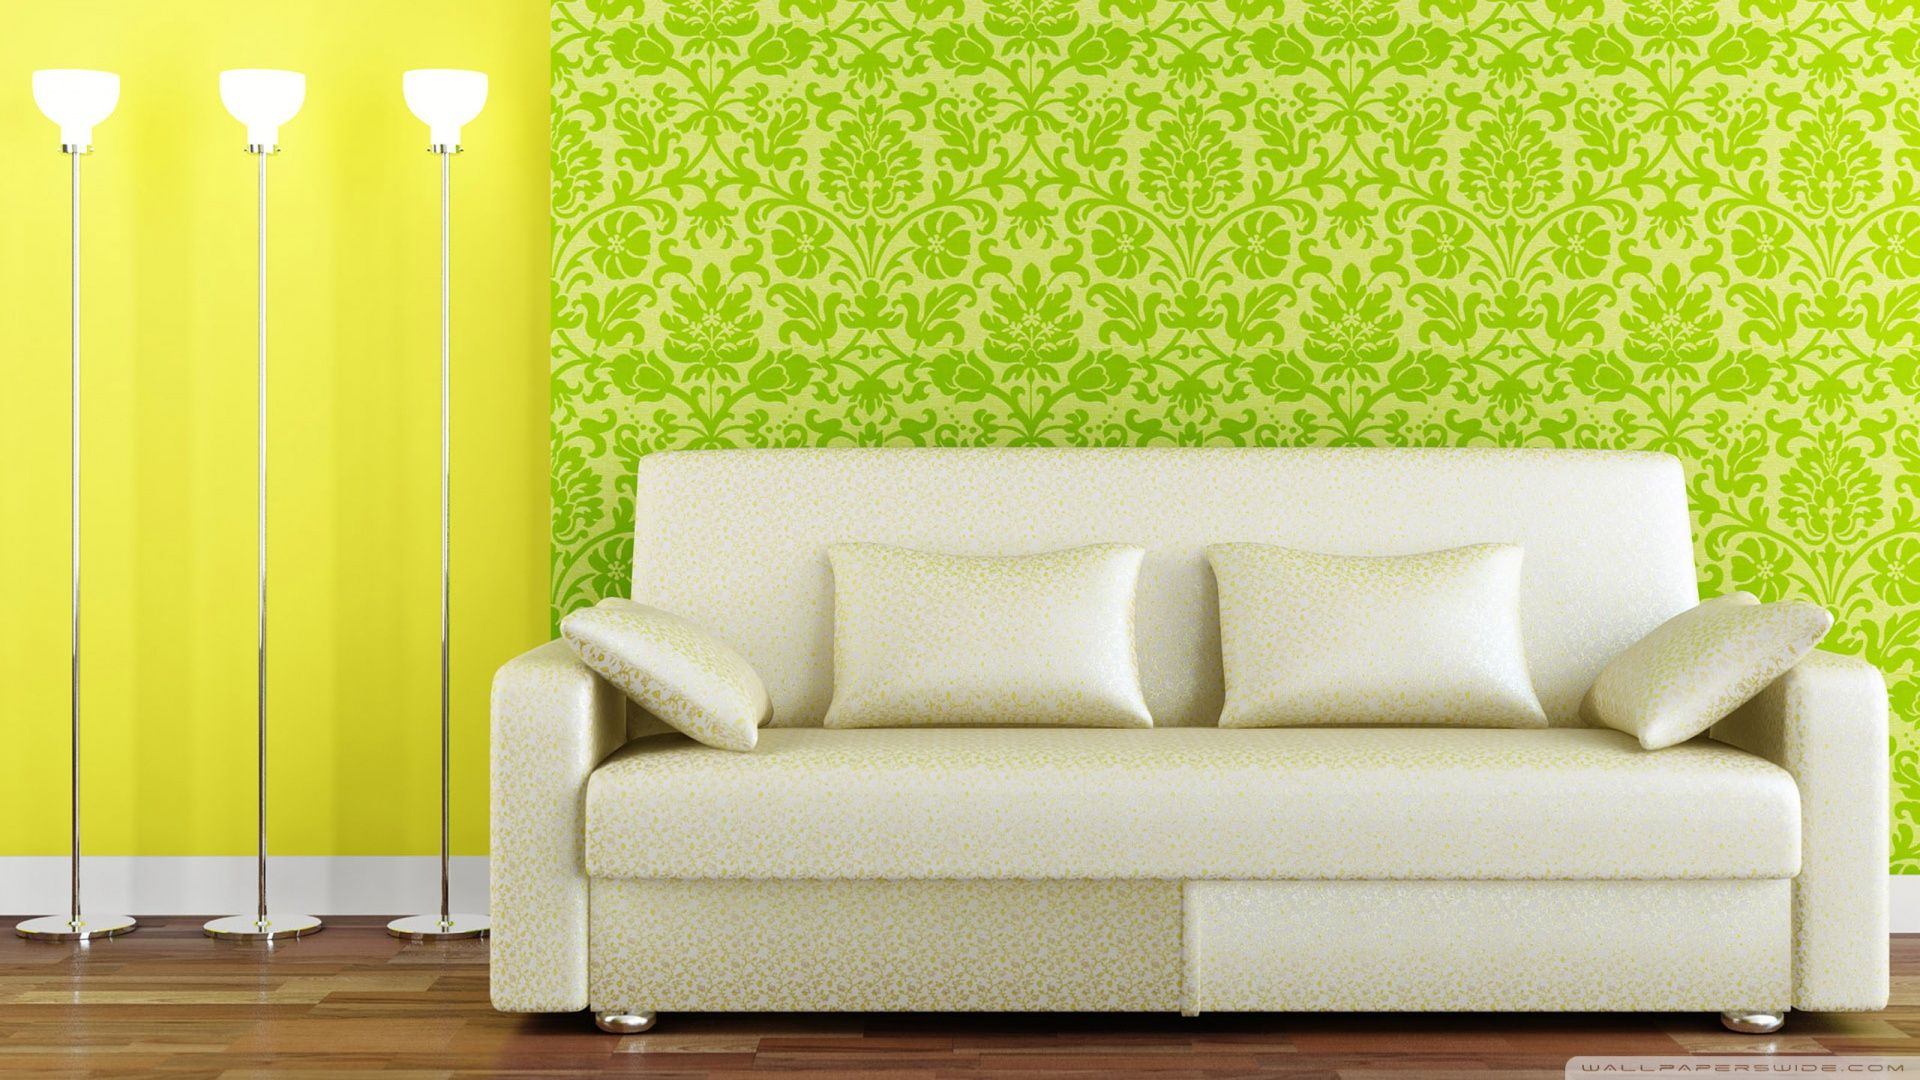 wallpaper designs for living room | bedroom and living room image